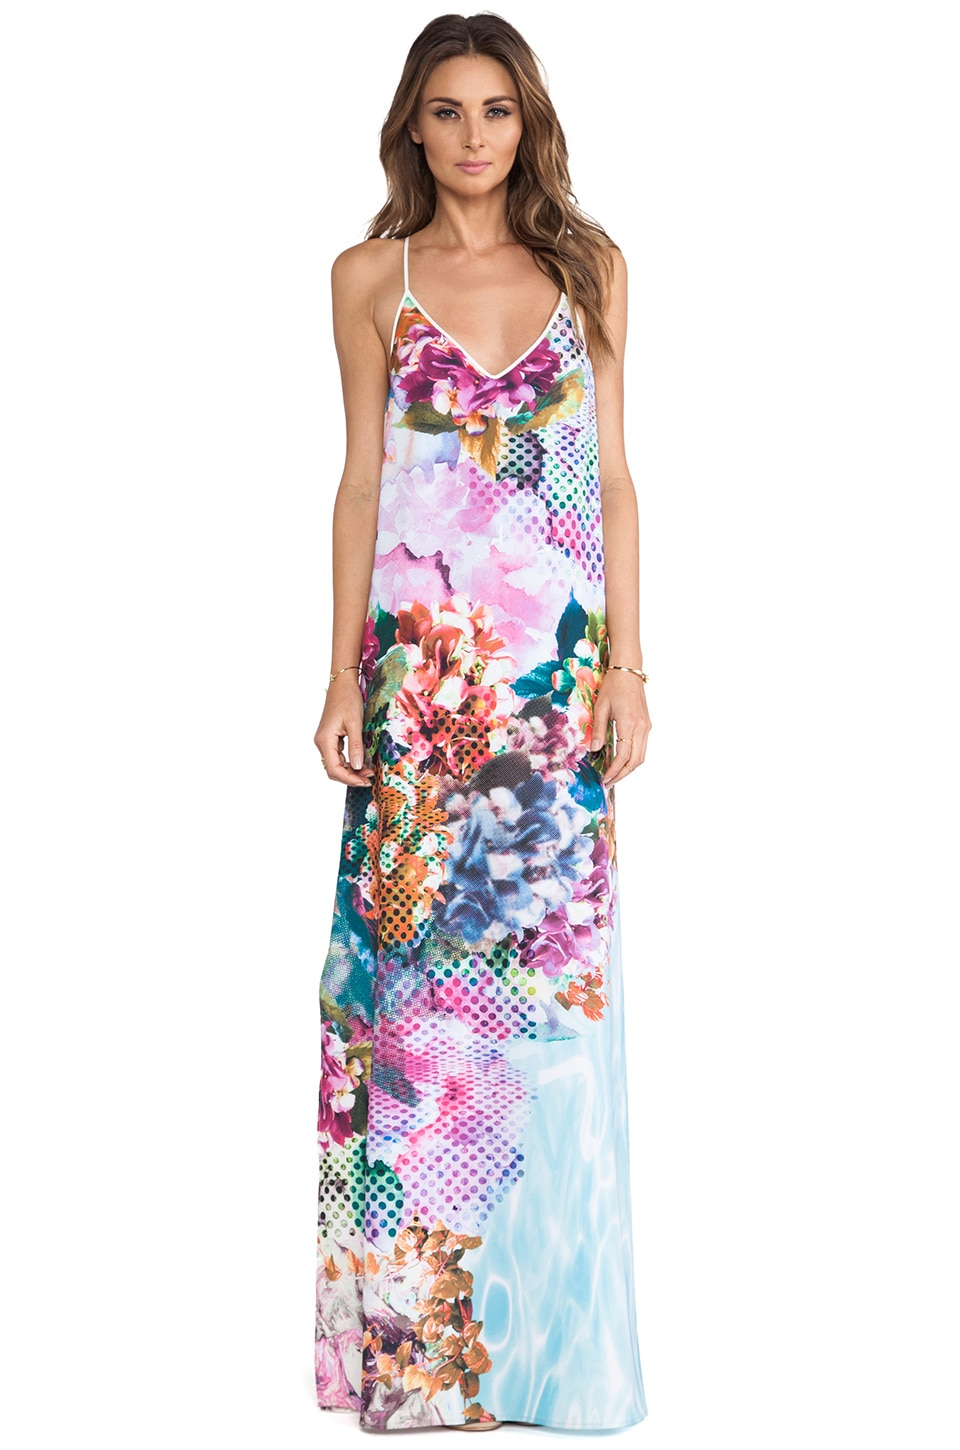 Clover Canyon Pool Flower Maxi Dress in Multi